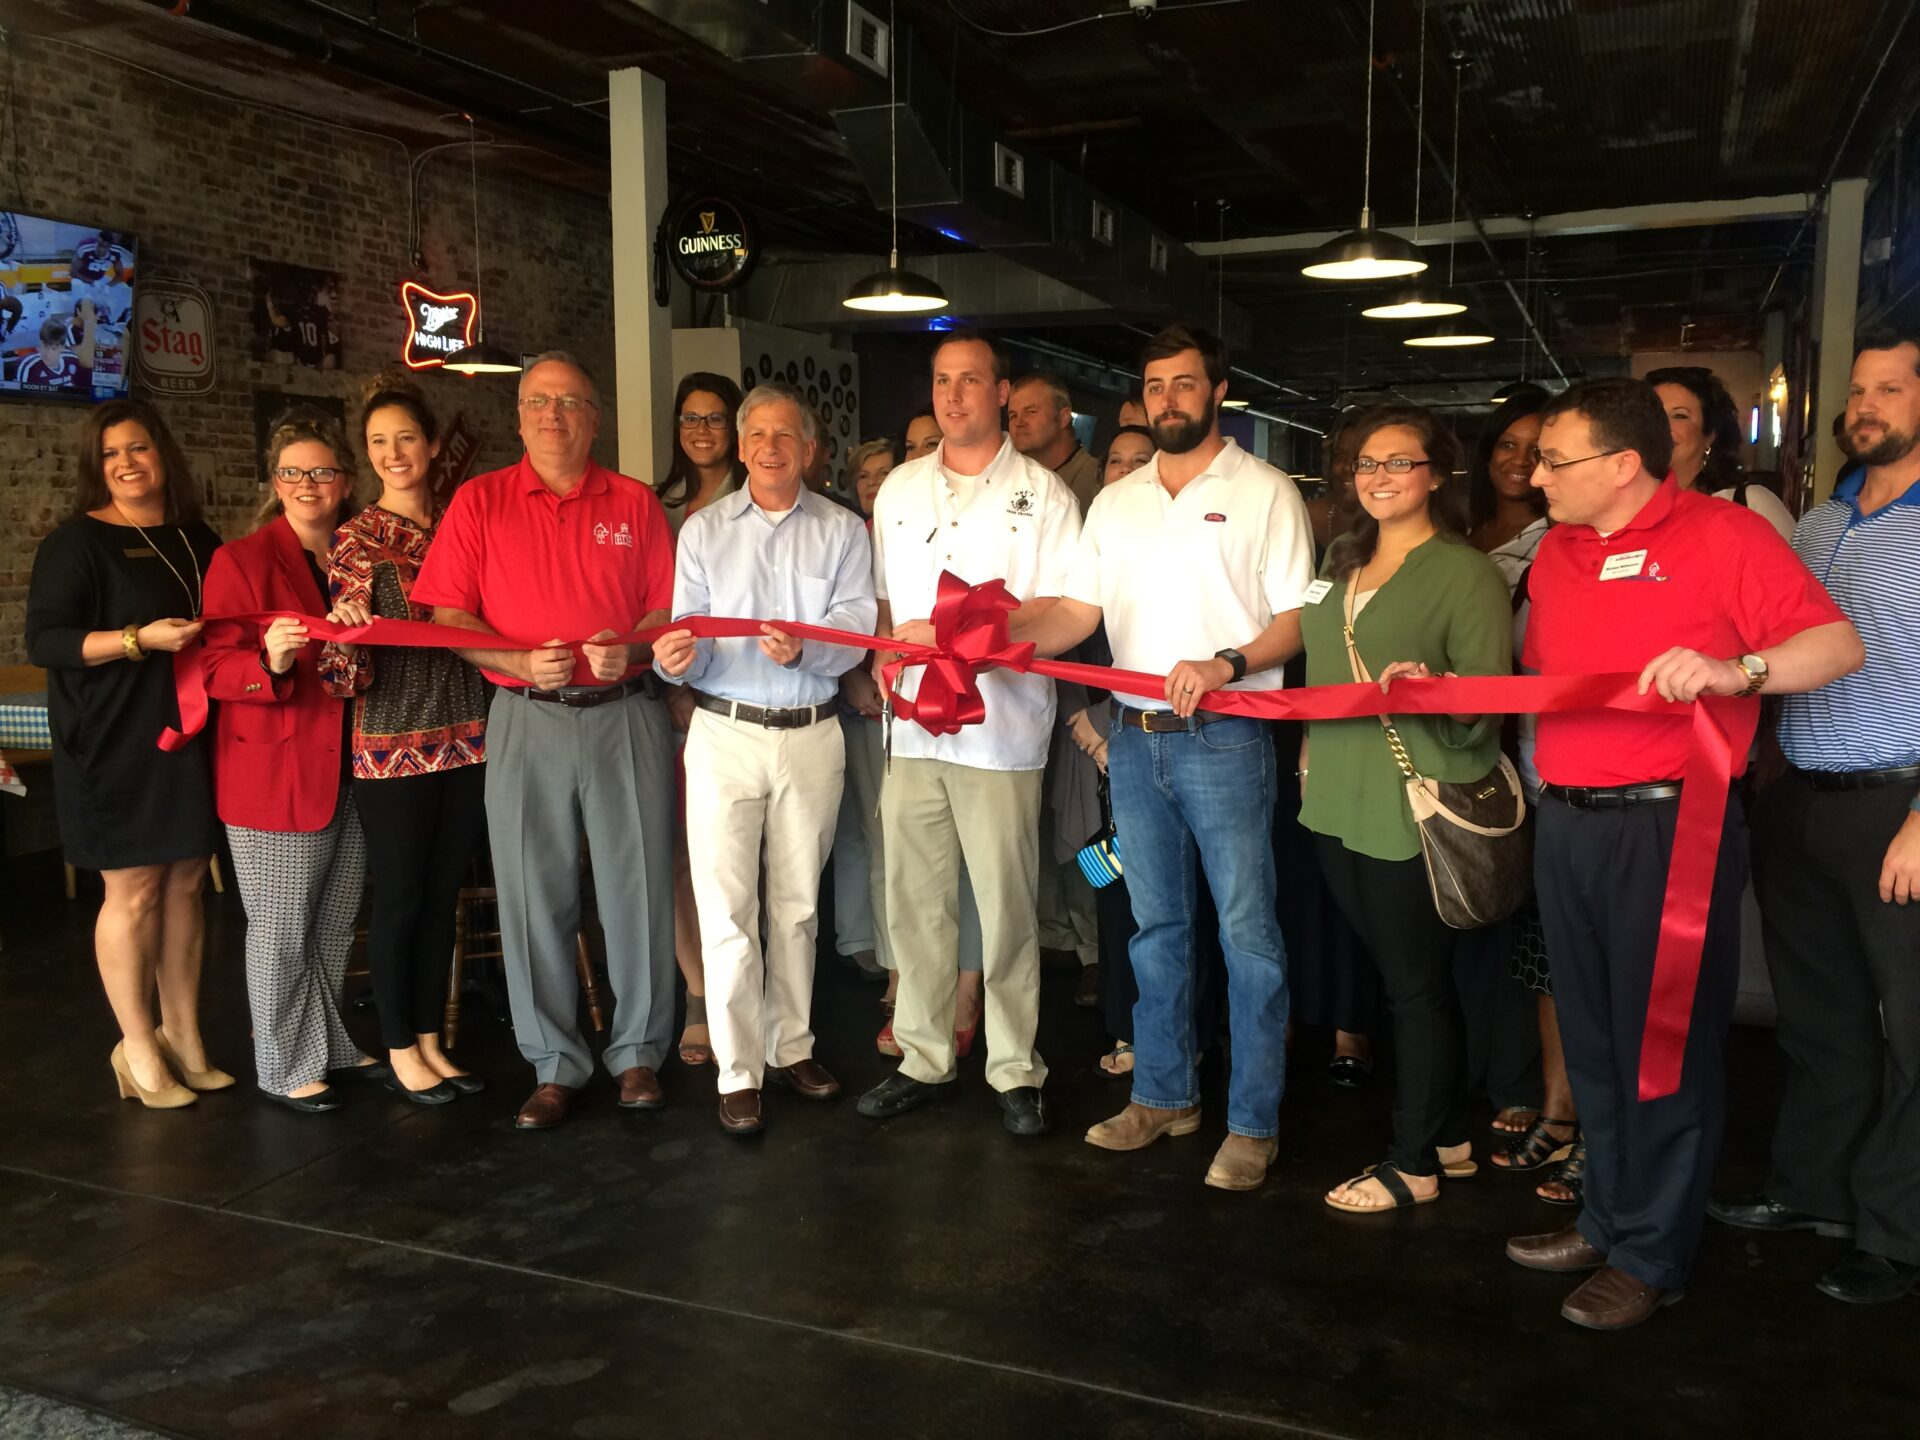 Chamber members and owners of Gus's Fried Chicken celebrate their first anniversary with a ribbon cutting.